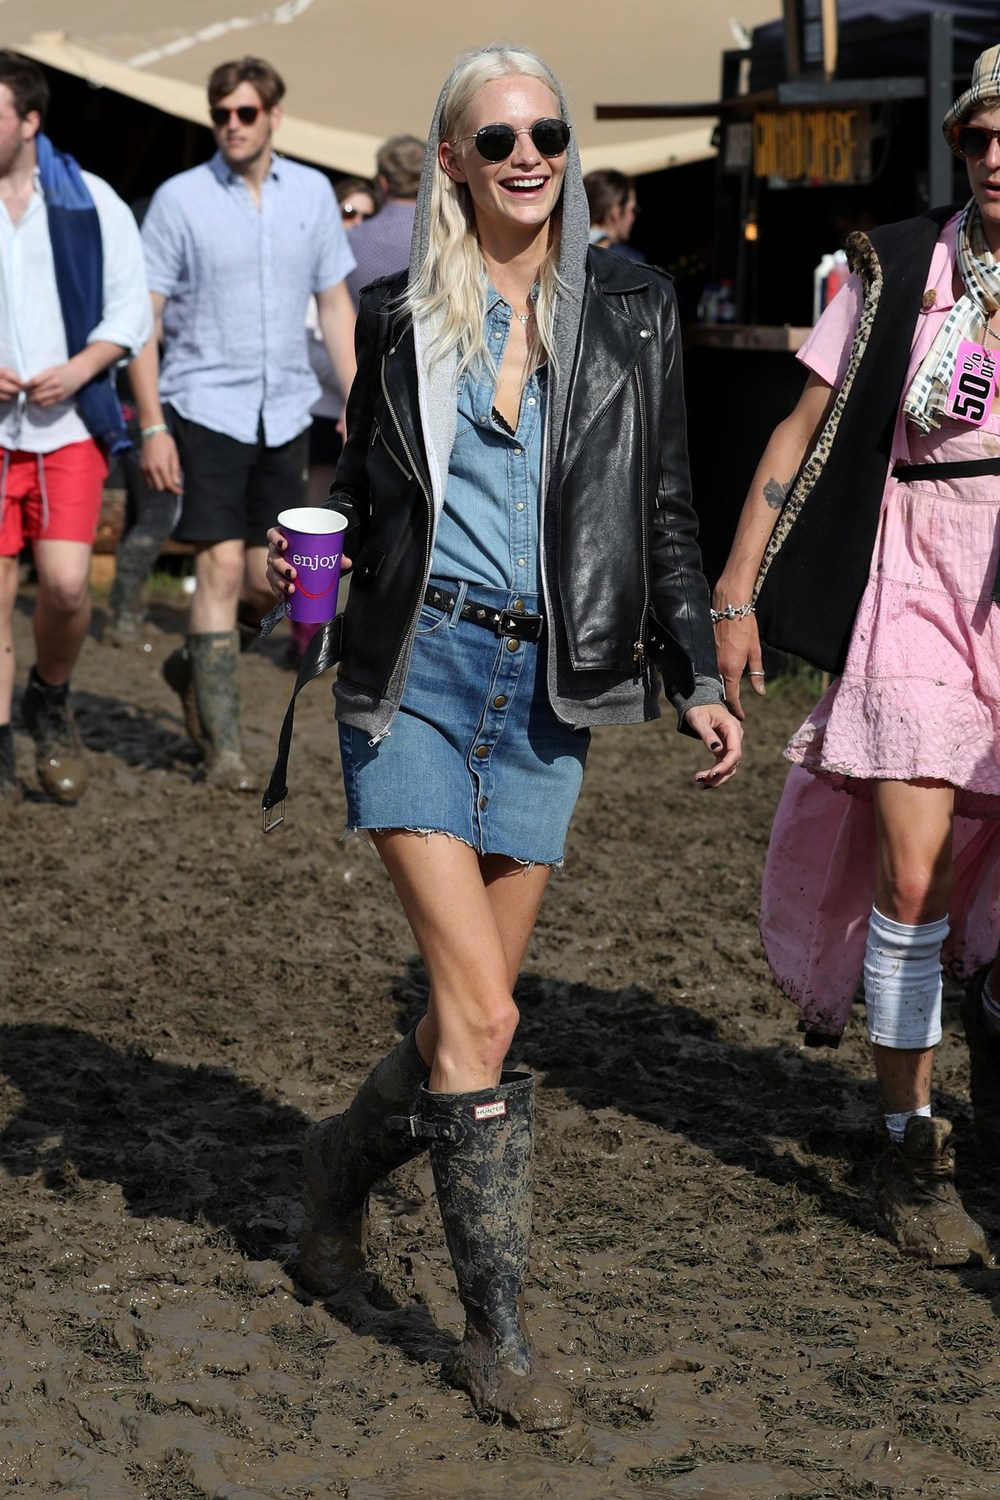 The ultimate Poppy Delevinge wearing double denim paired with an awesome leather jacket & hoodie